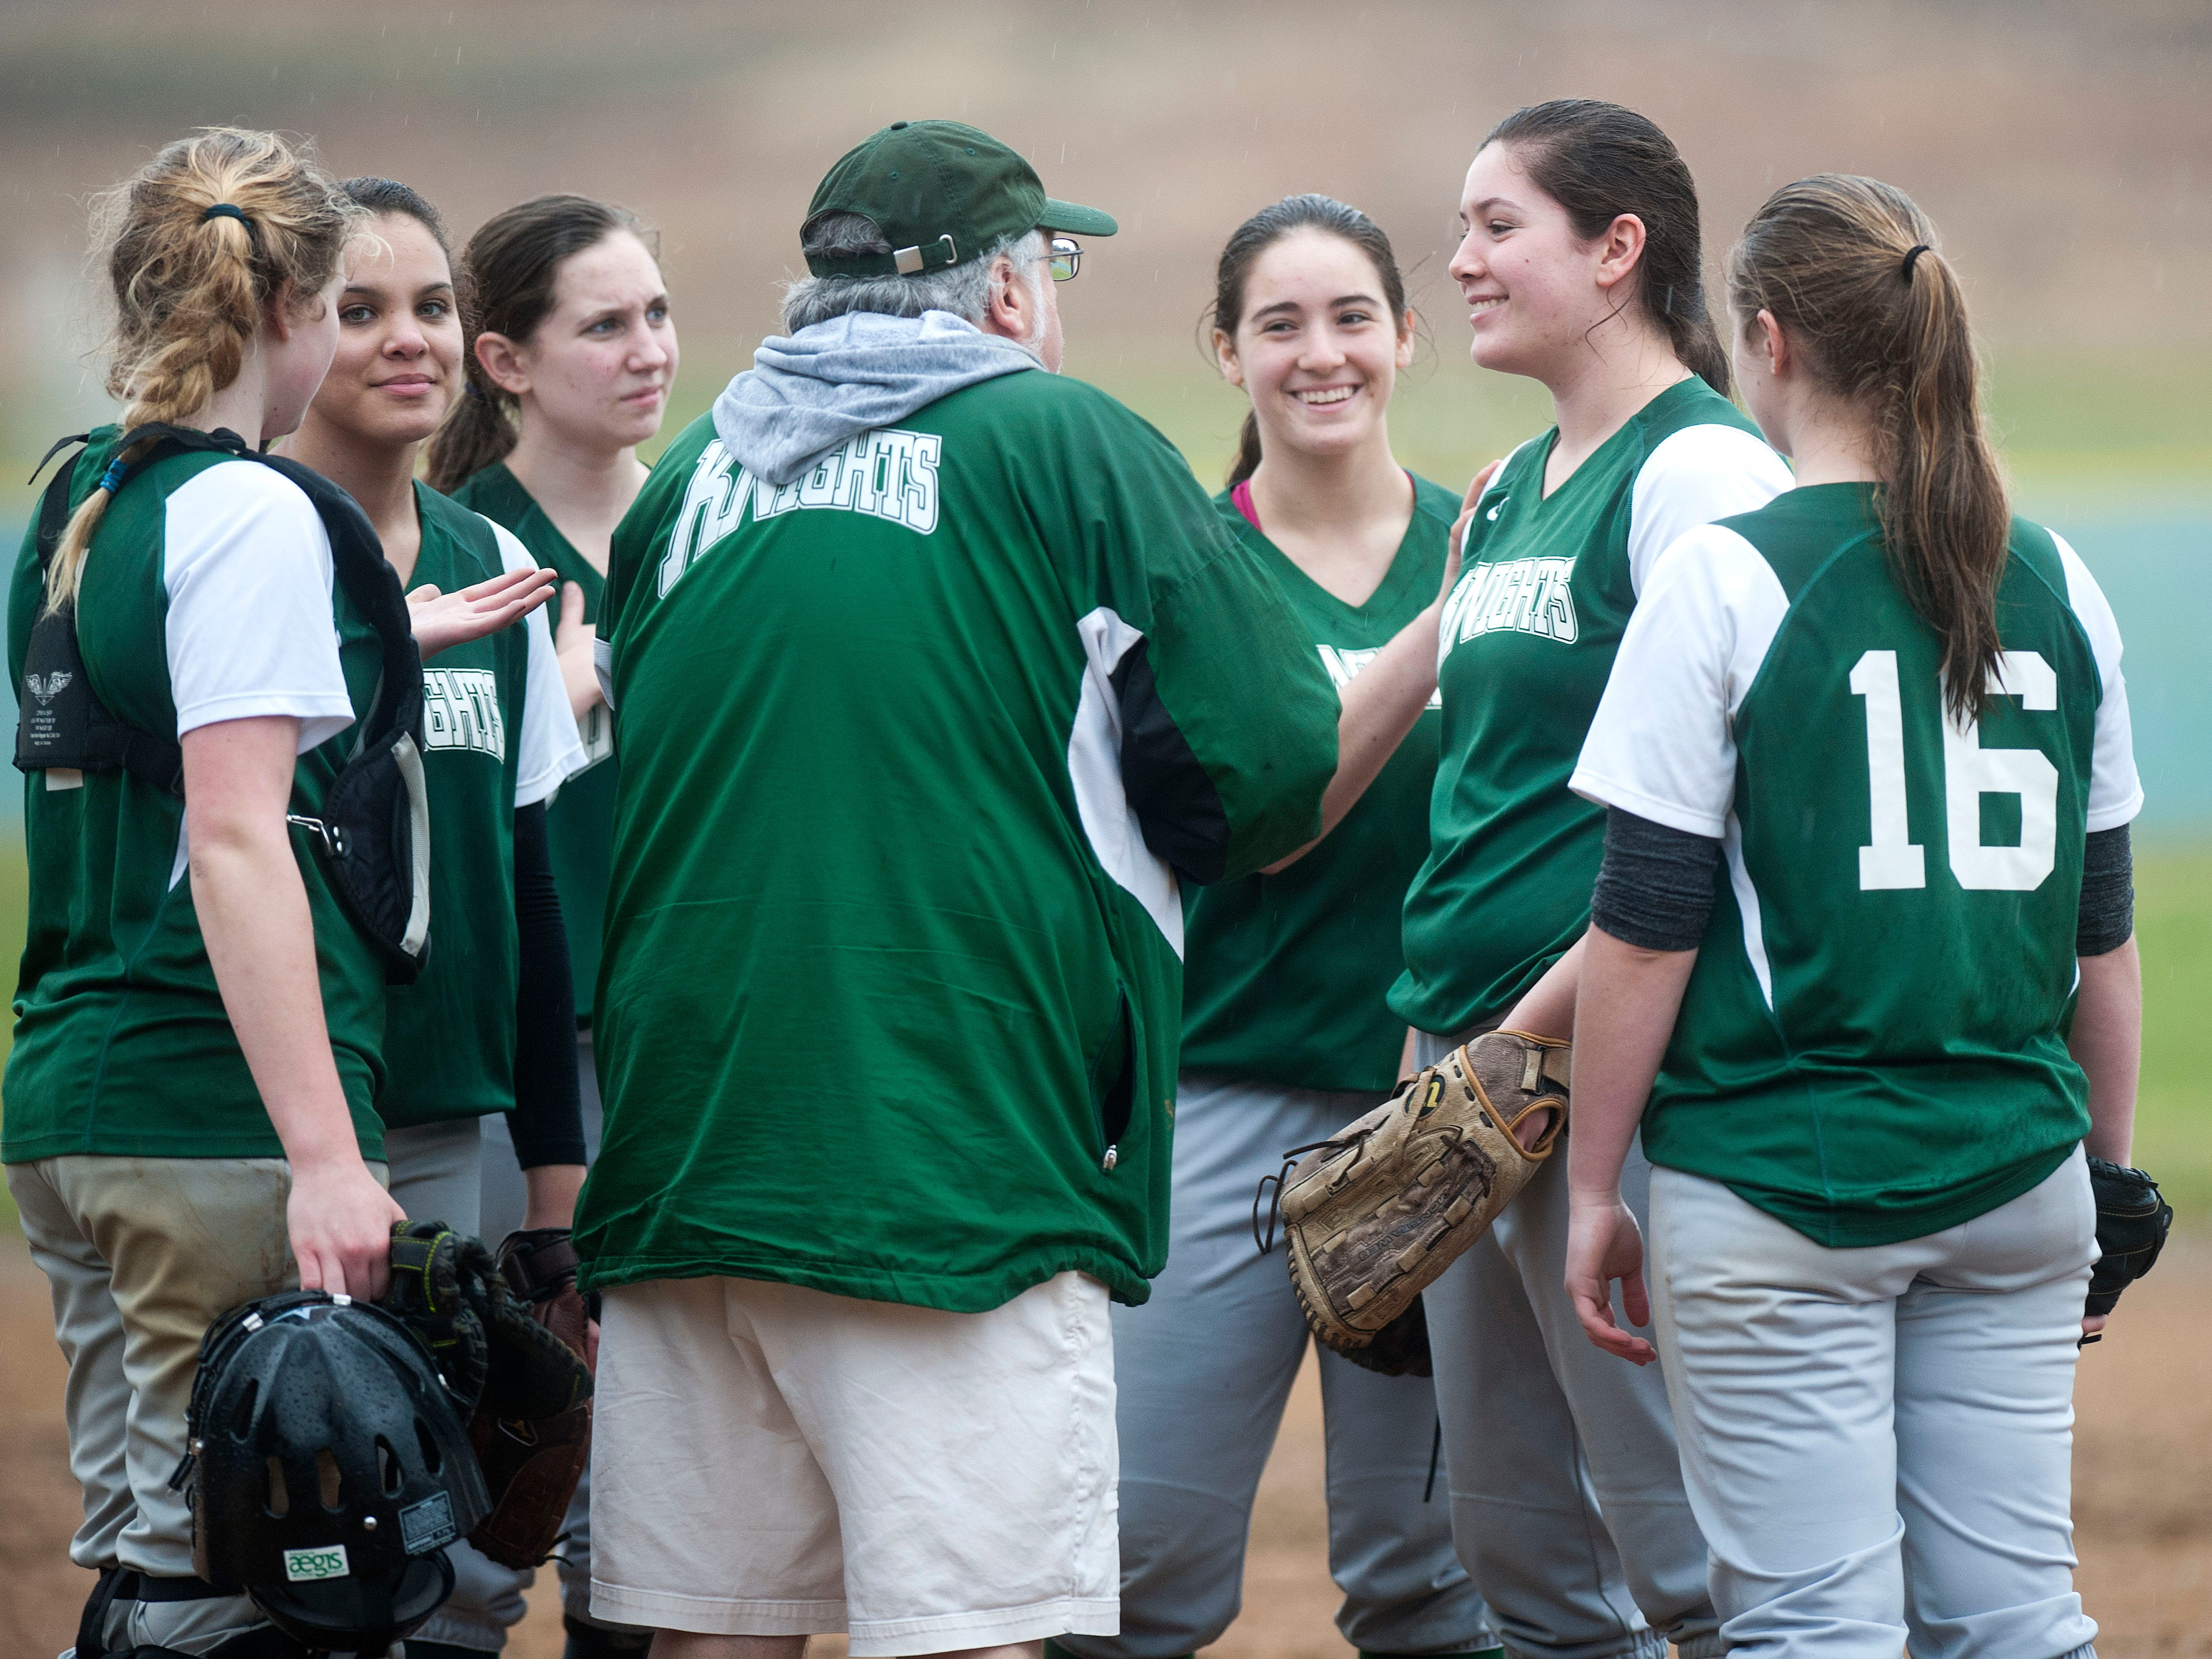 The Rice girls softball team meets on the mound between innings at Tuesday's game against Essex on April 22, 2014.